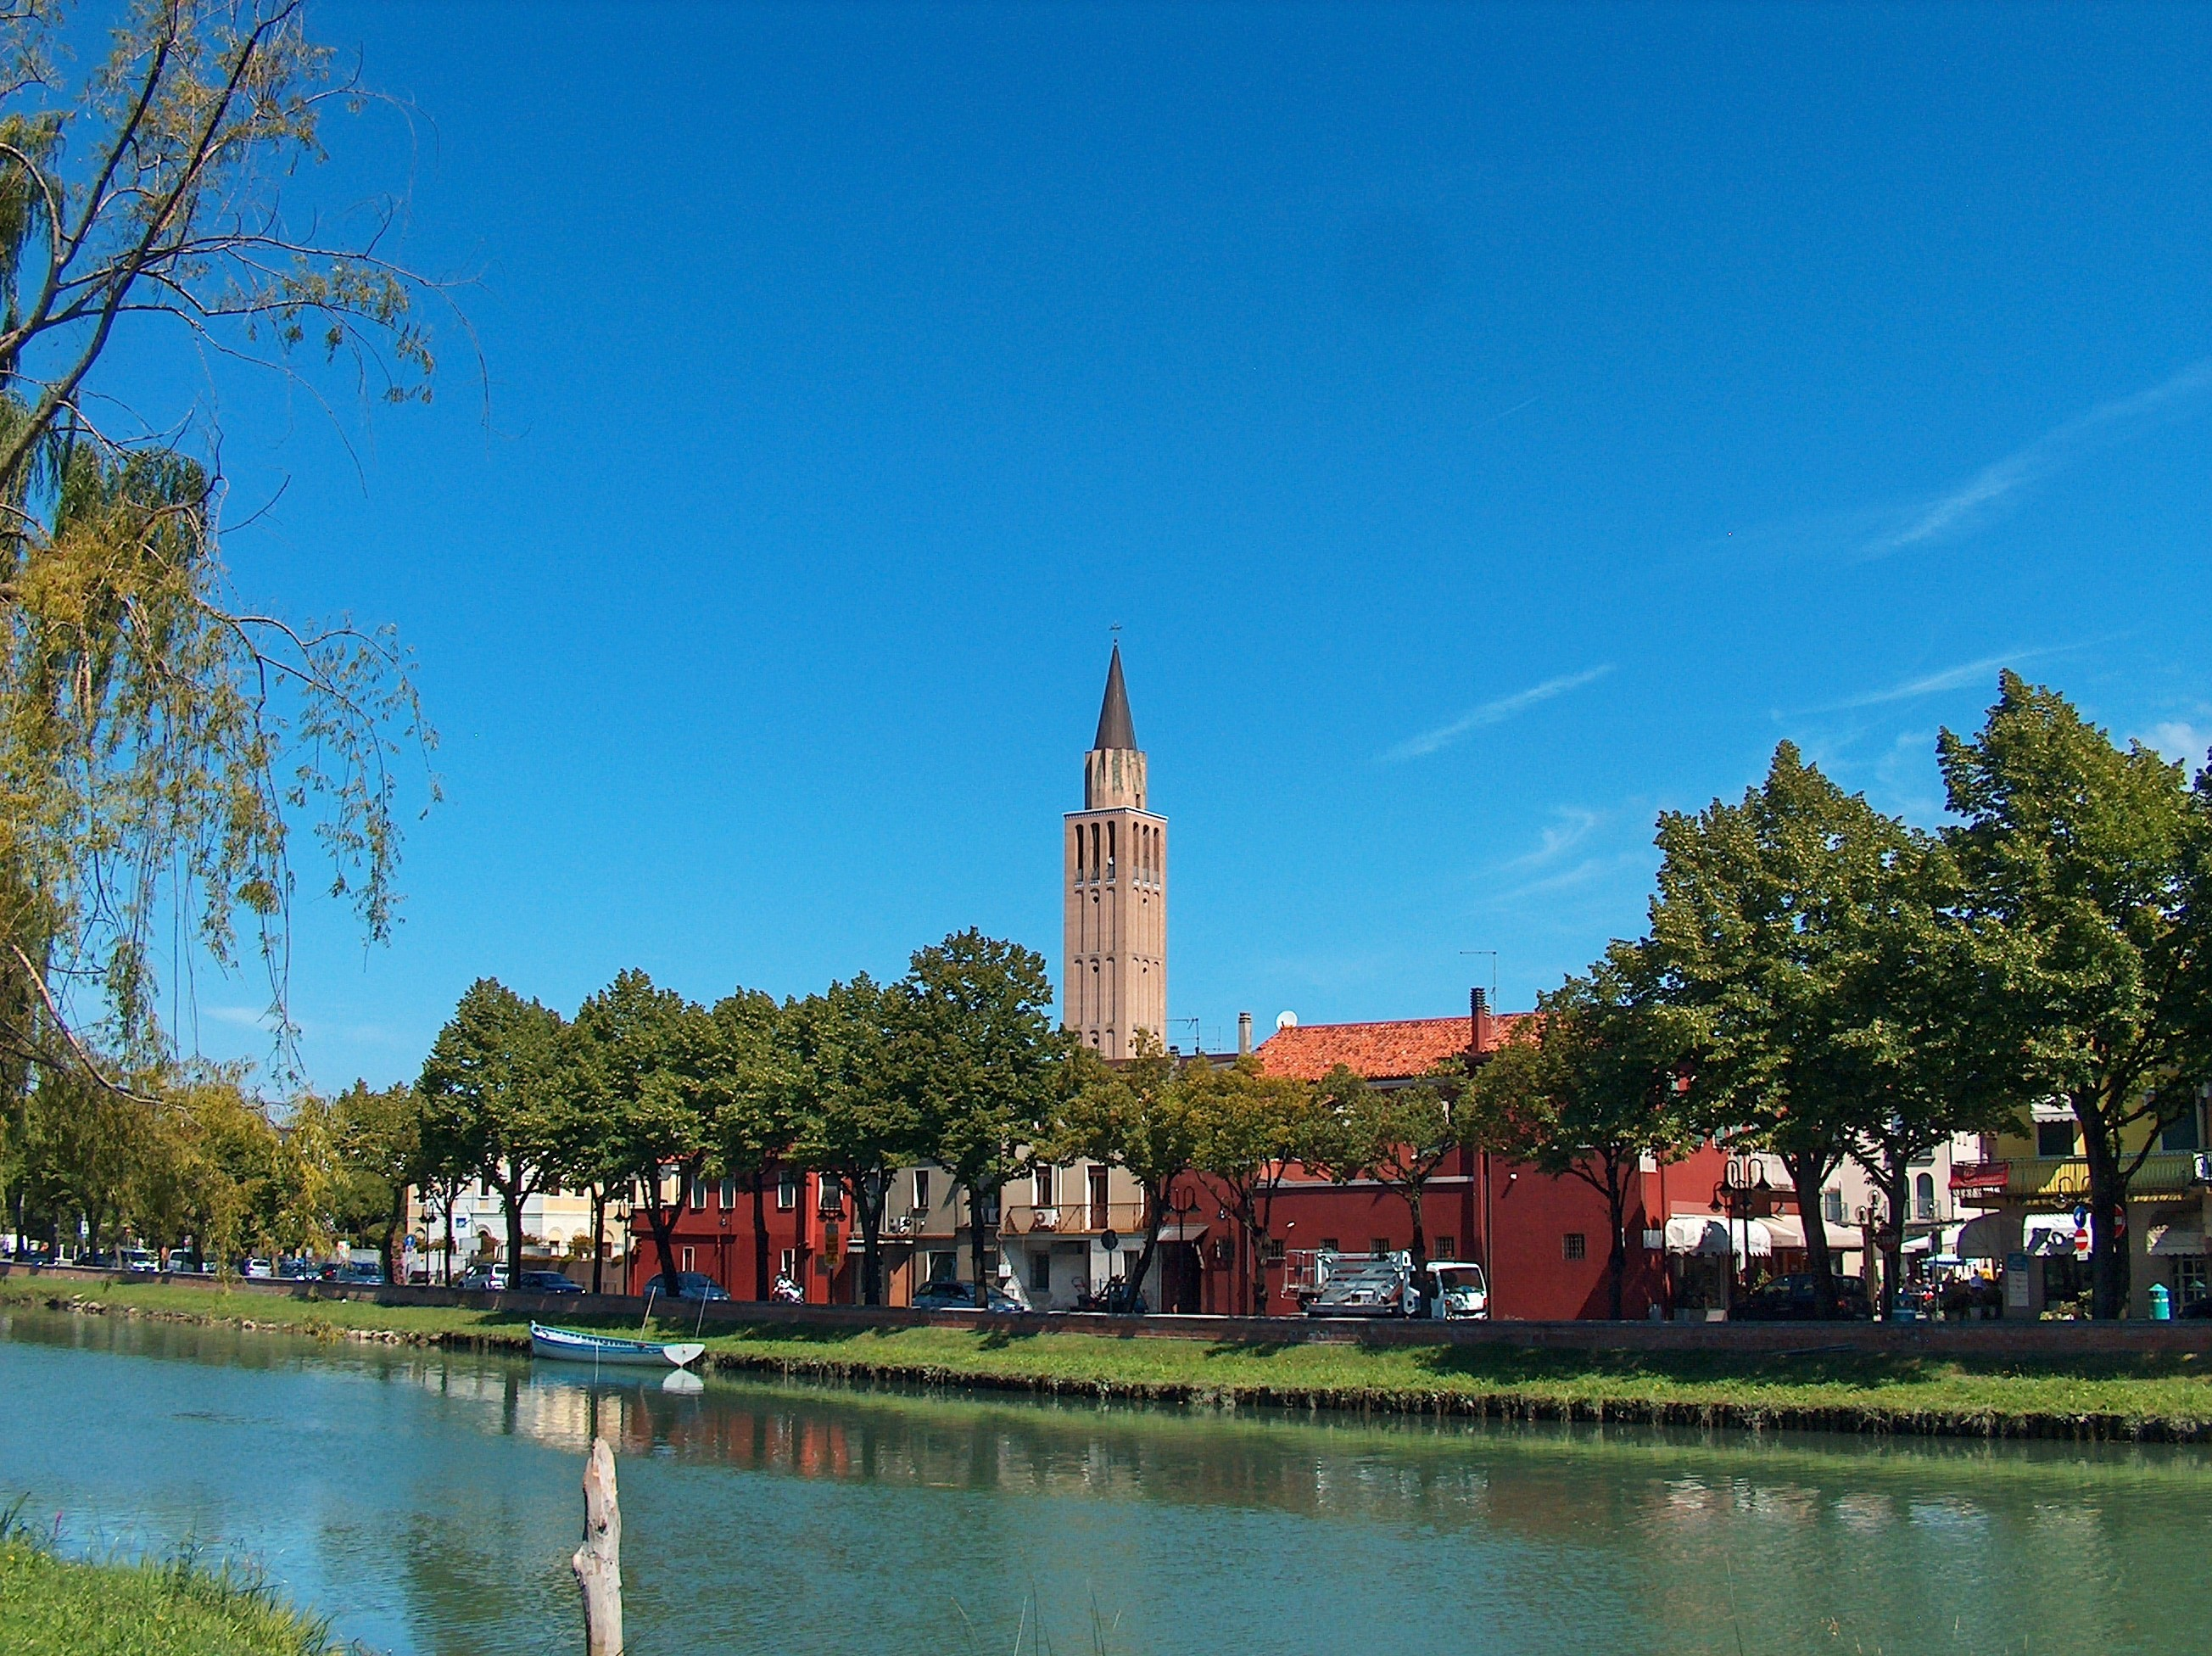 Italy rivers jesolo HD Wallpaper